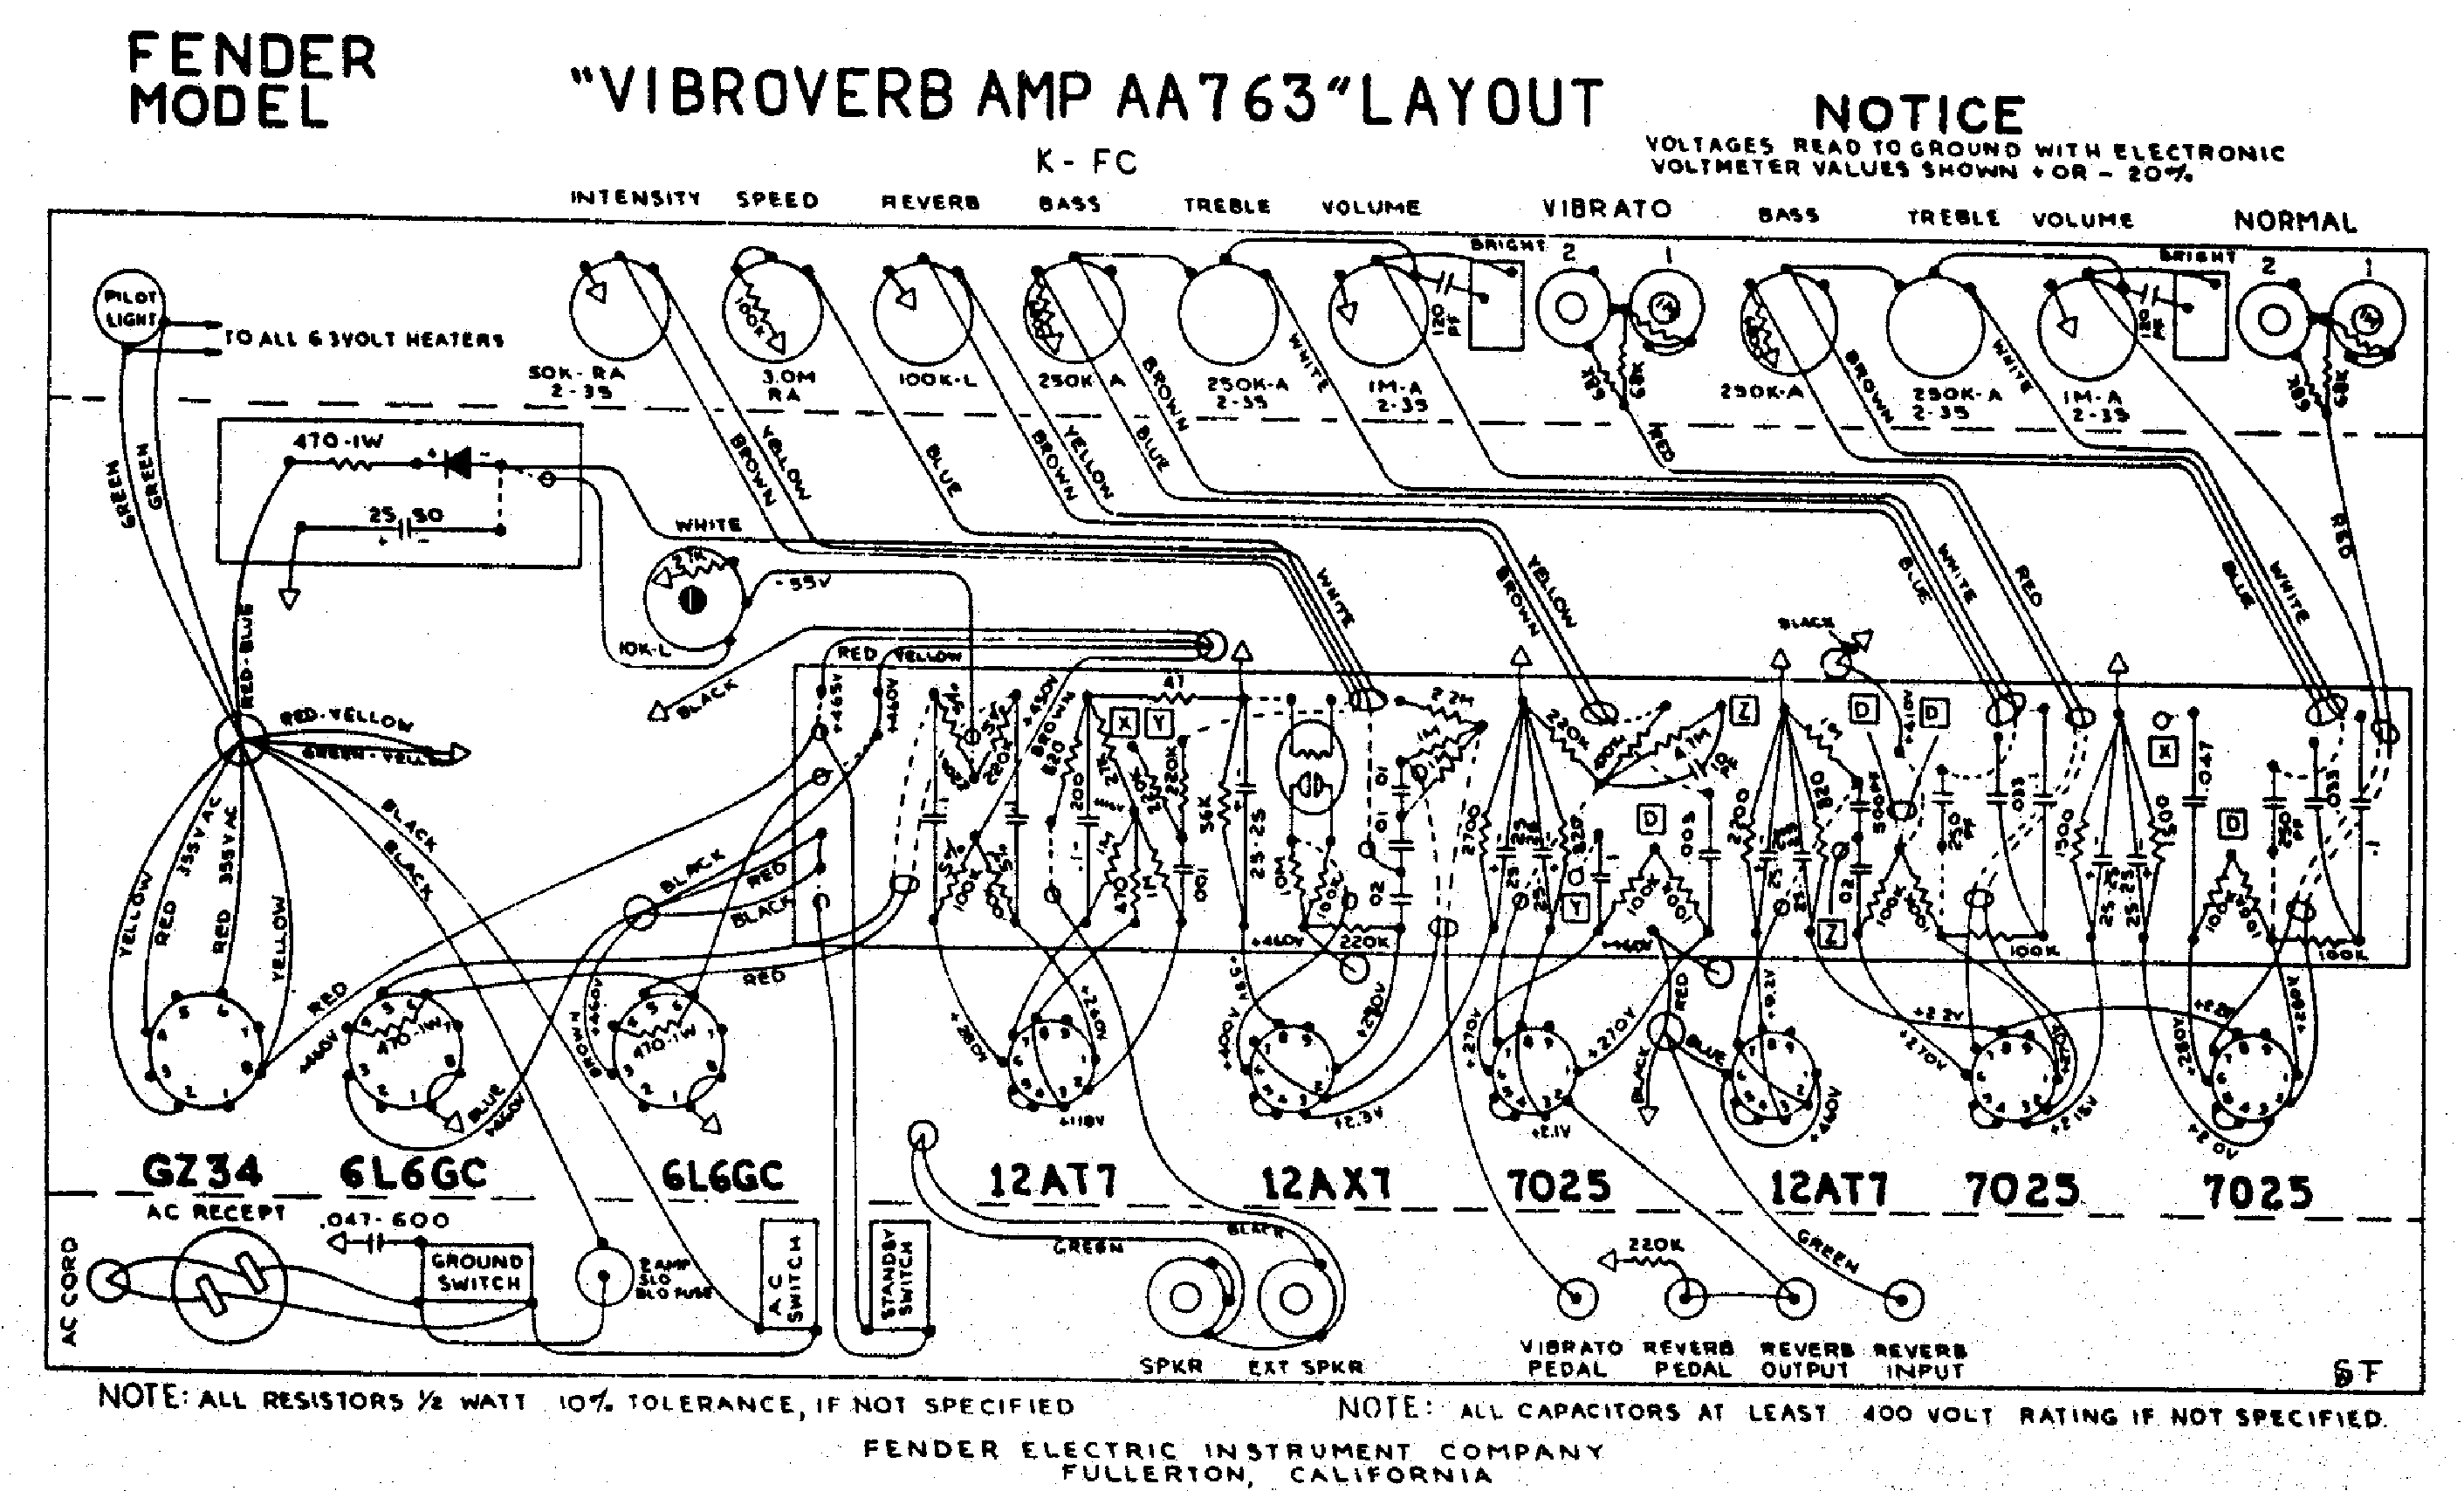 Fender Champ Amp Schematic Layout